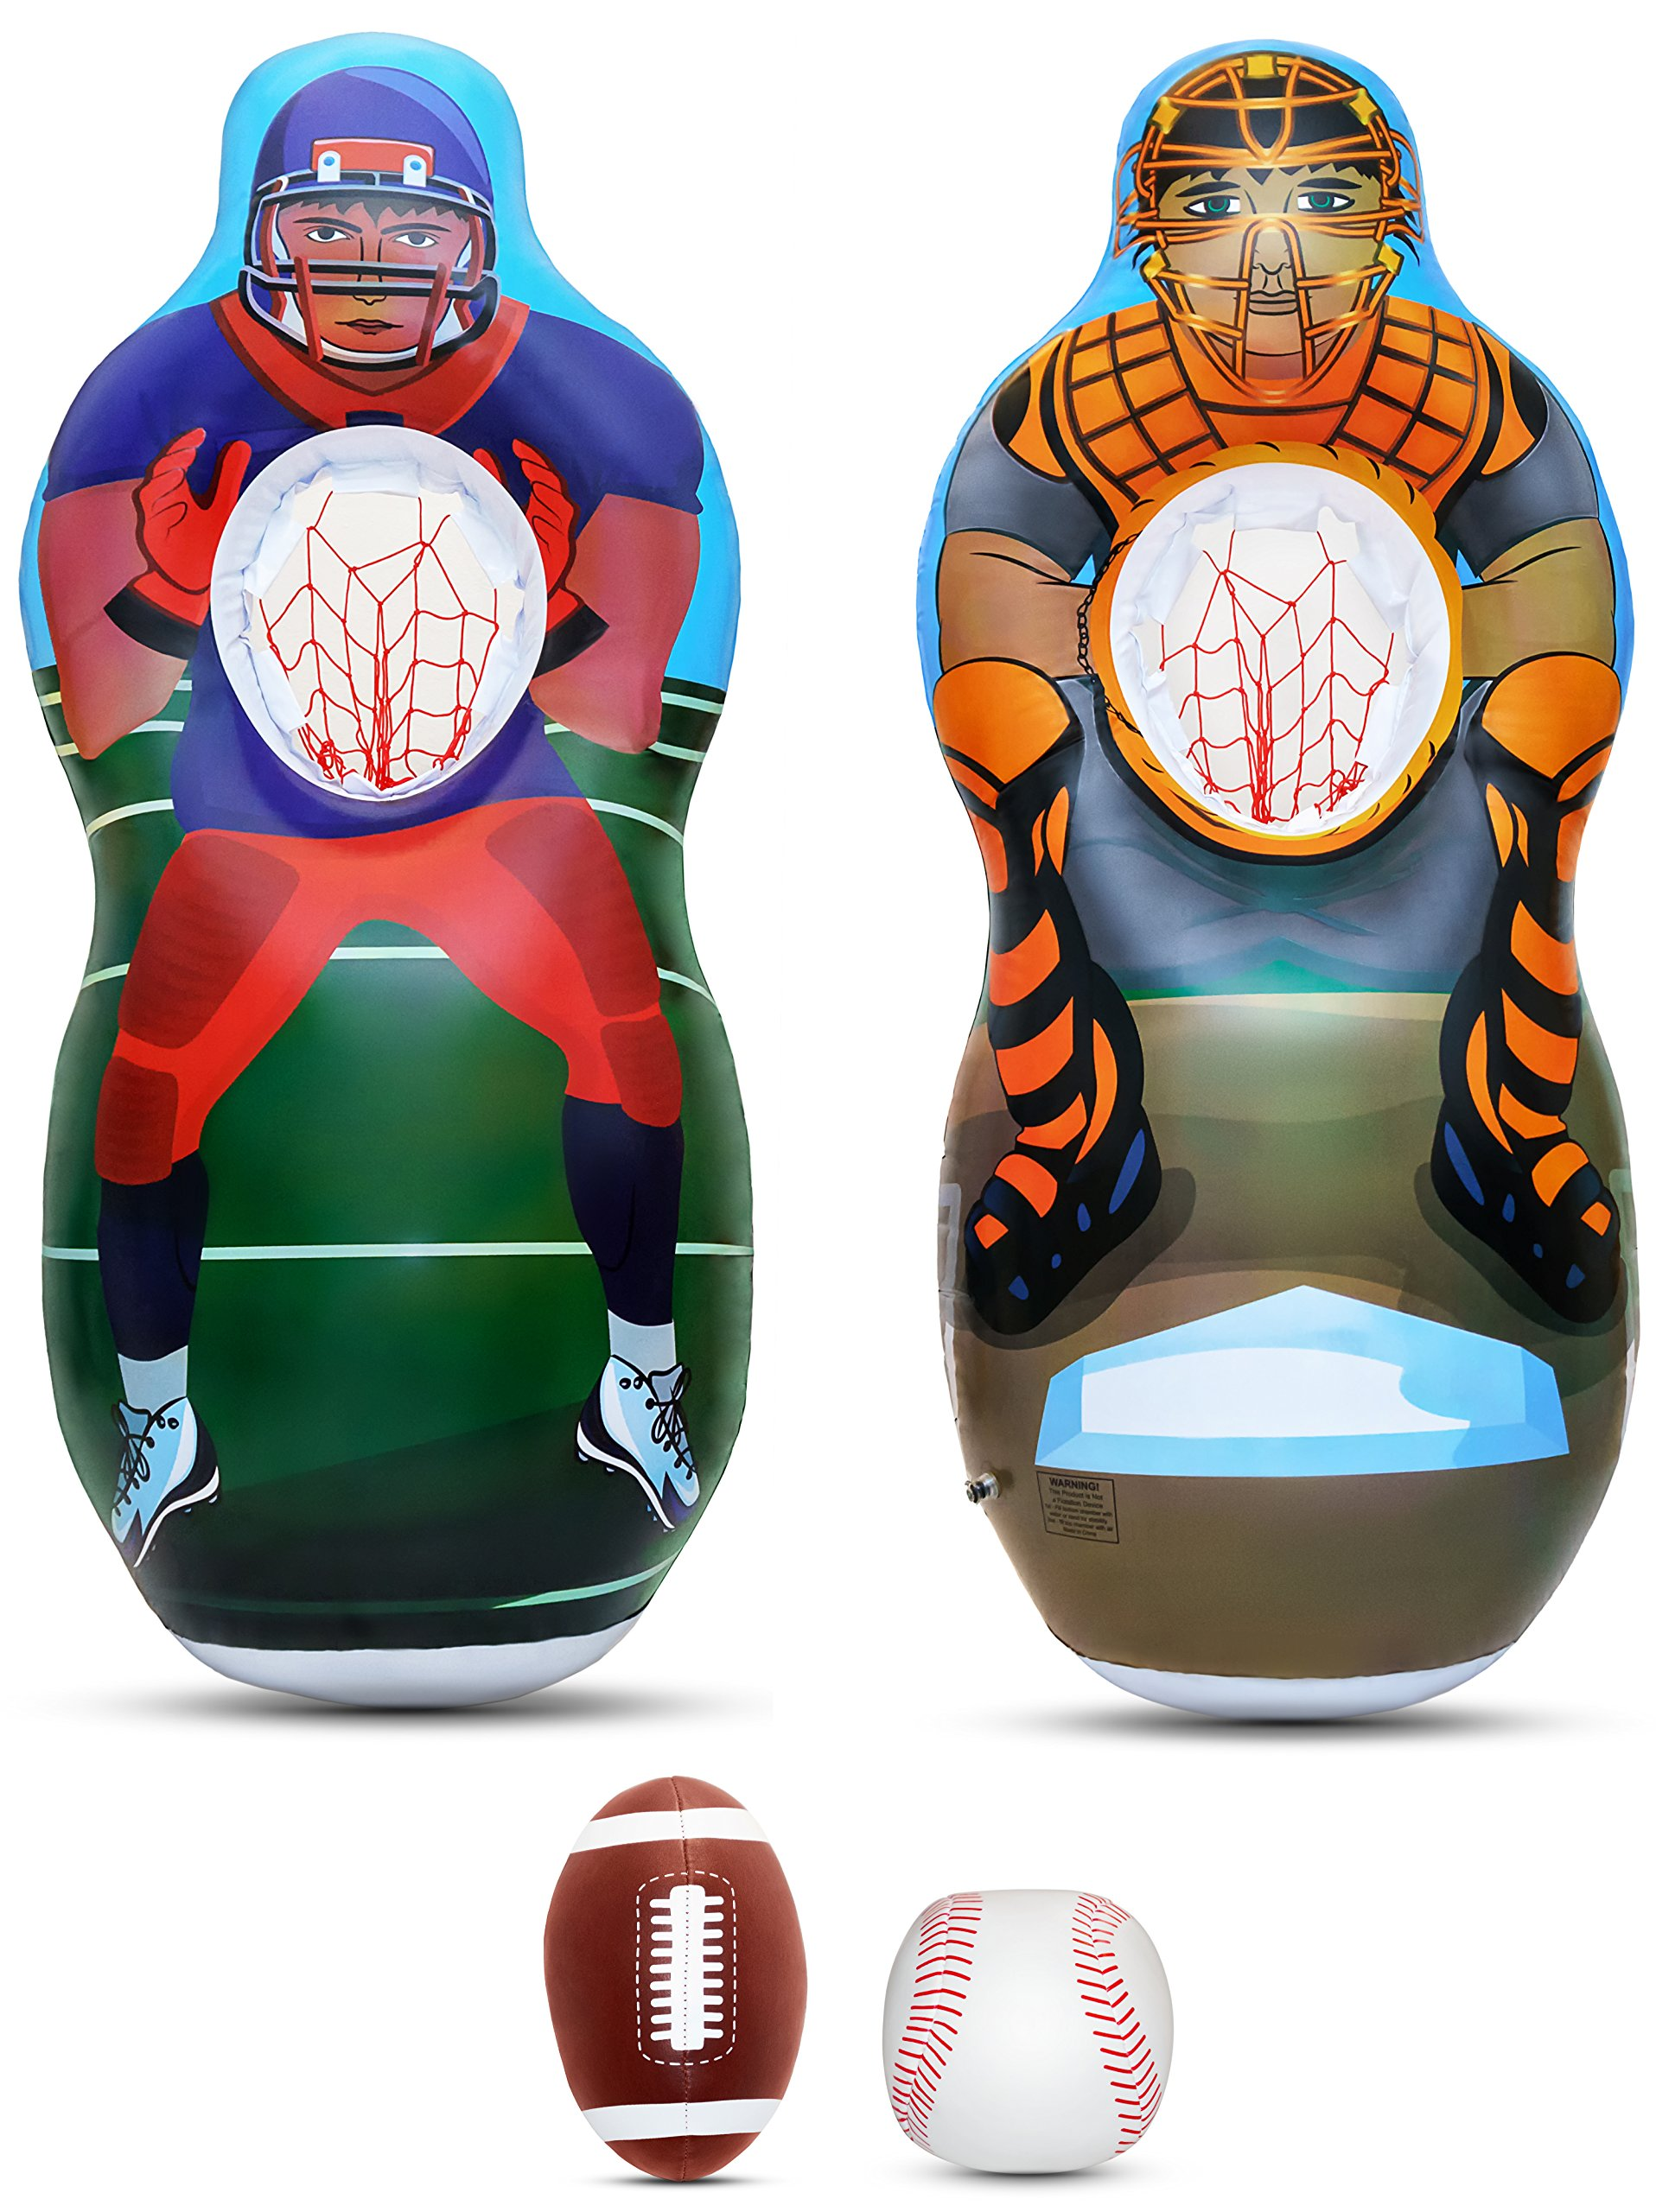 Inflatable Two Sided Football & Baseball Target Set - Includes One Inflatable 5 Foot Tall Target (Football Player on one side and Baseball Catcher on 2nd Side), a Soft Mini Football and Mini Baseball by ImpiriLux